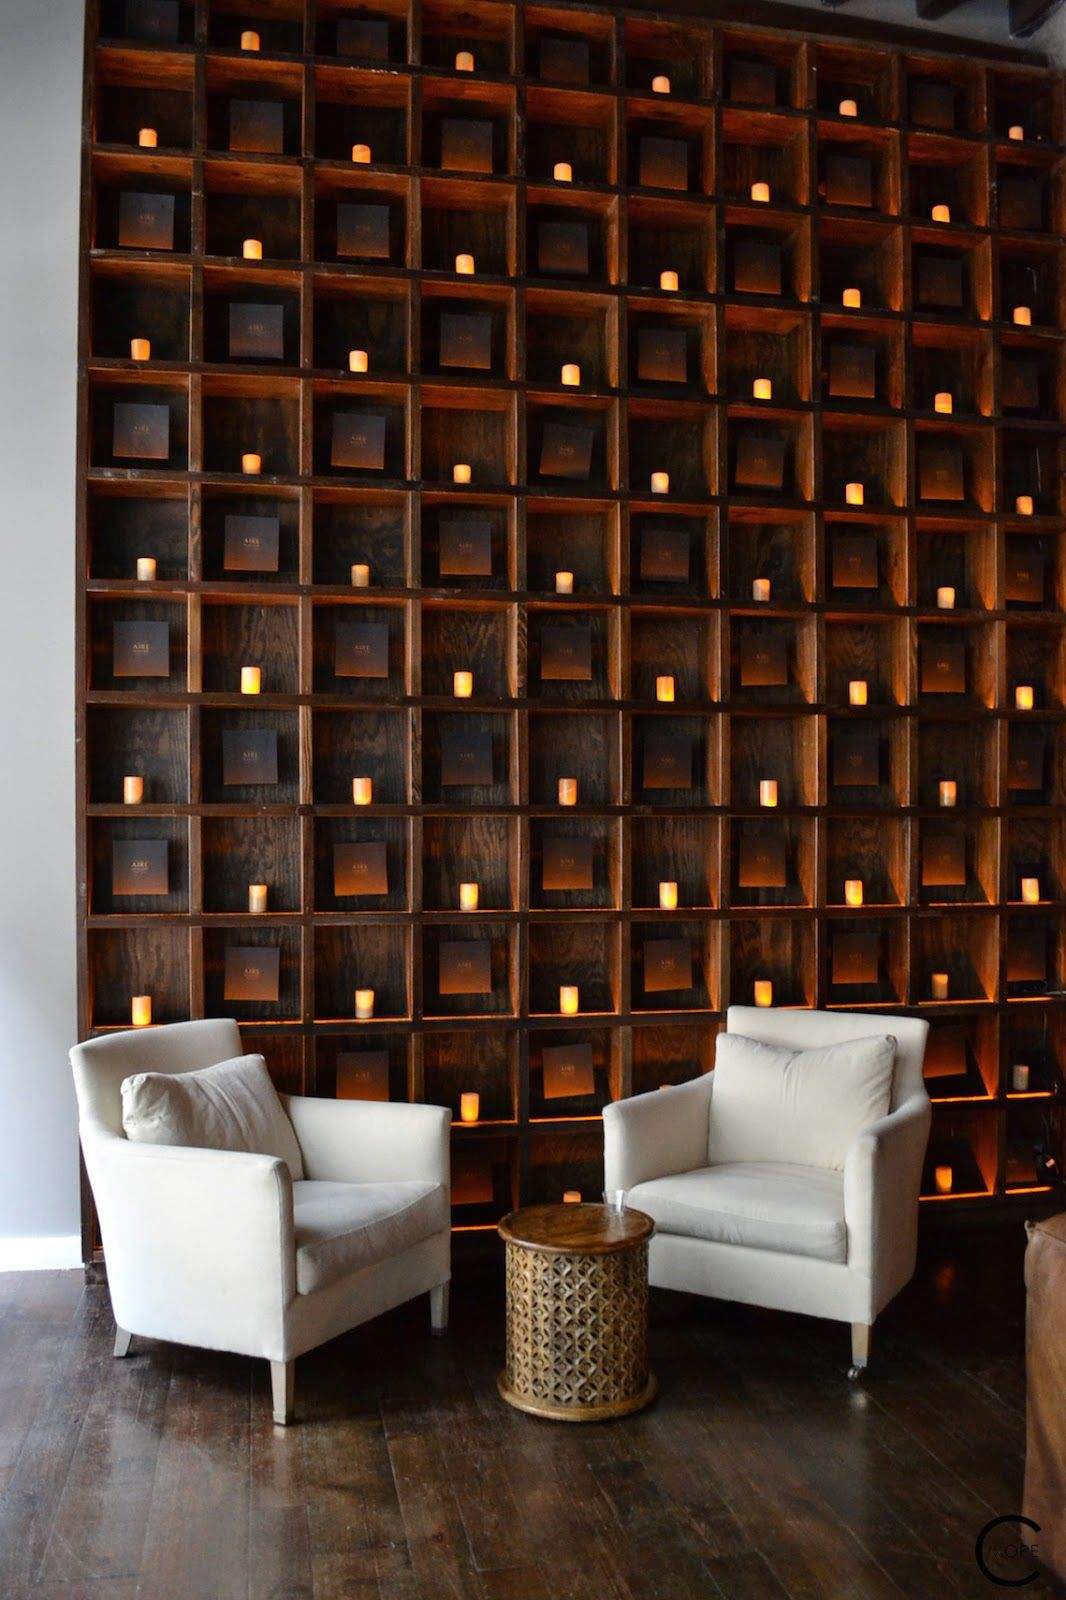 Attirant Spa | AIRE SOHO NYC | BlogtourNYC | MR.STEAM | By C More Interior Design  Blog | Interieuradvies Blog